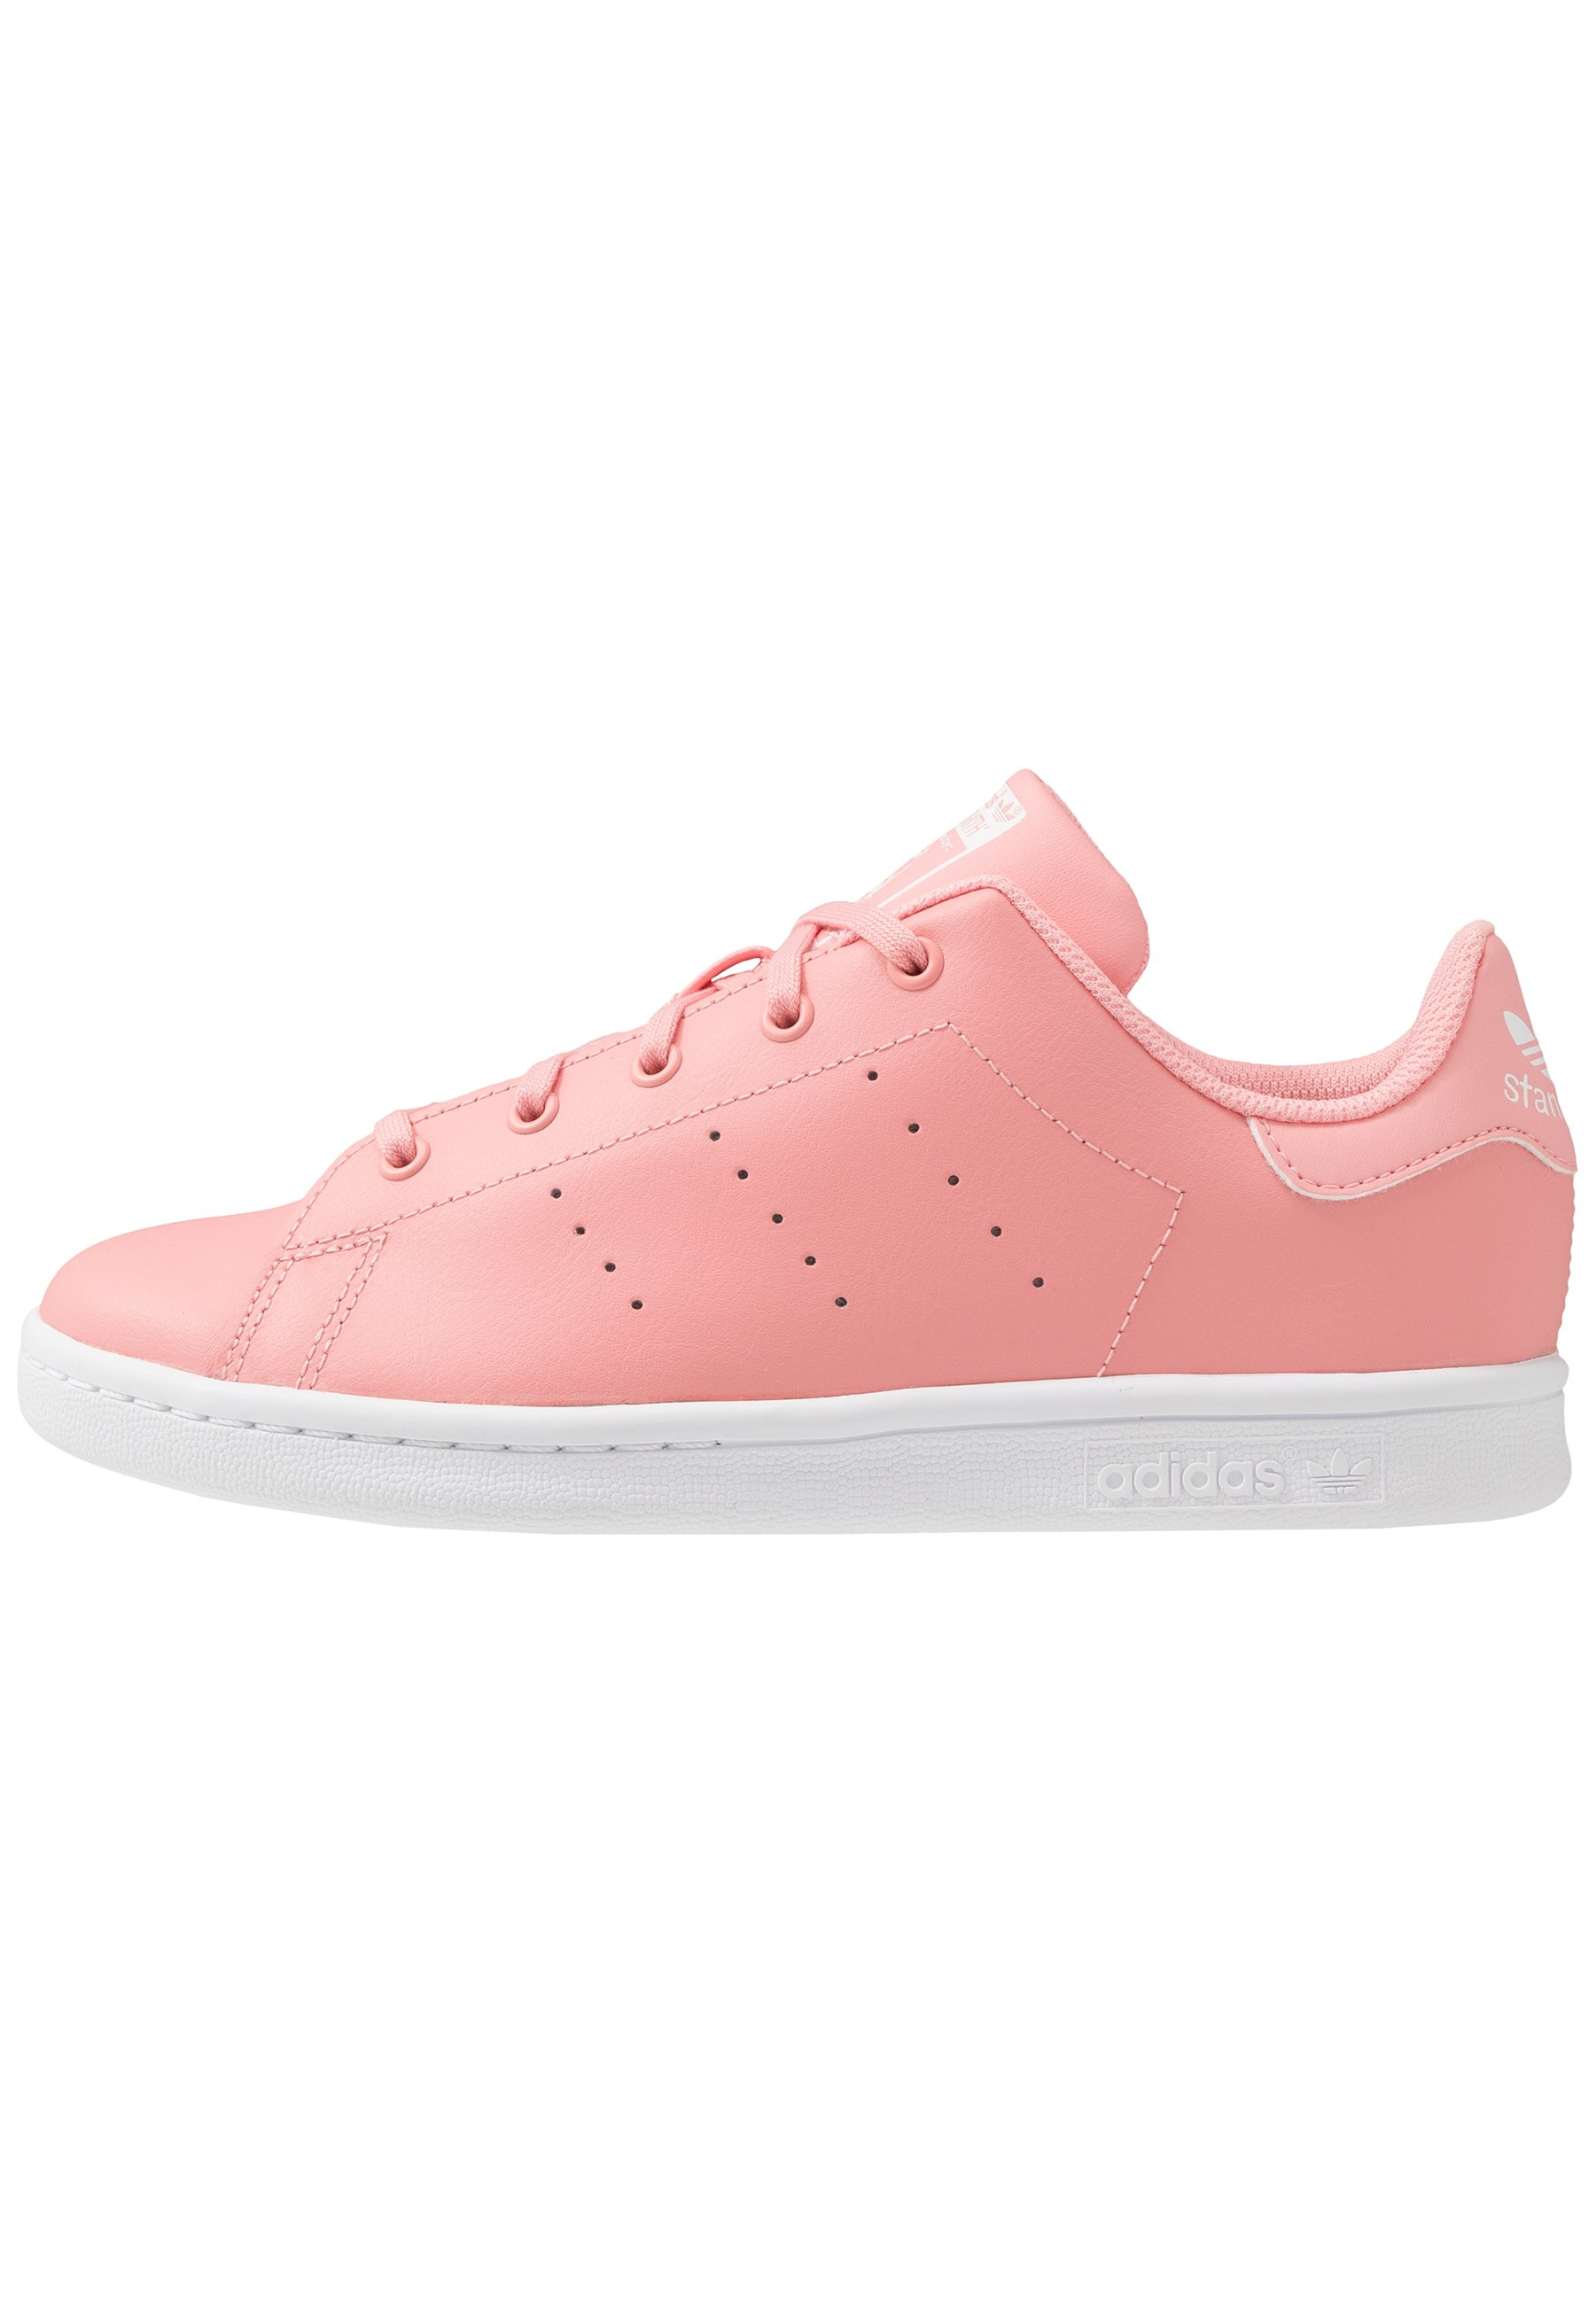 adidas Originals STAN SMITH Joggesko glow pinkfootwear